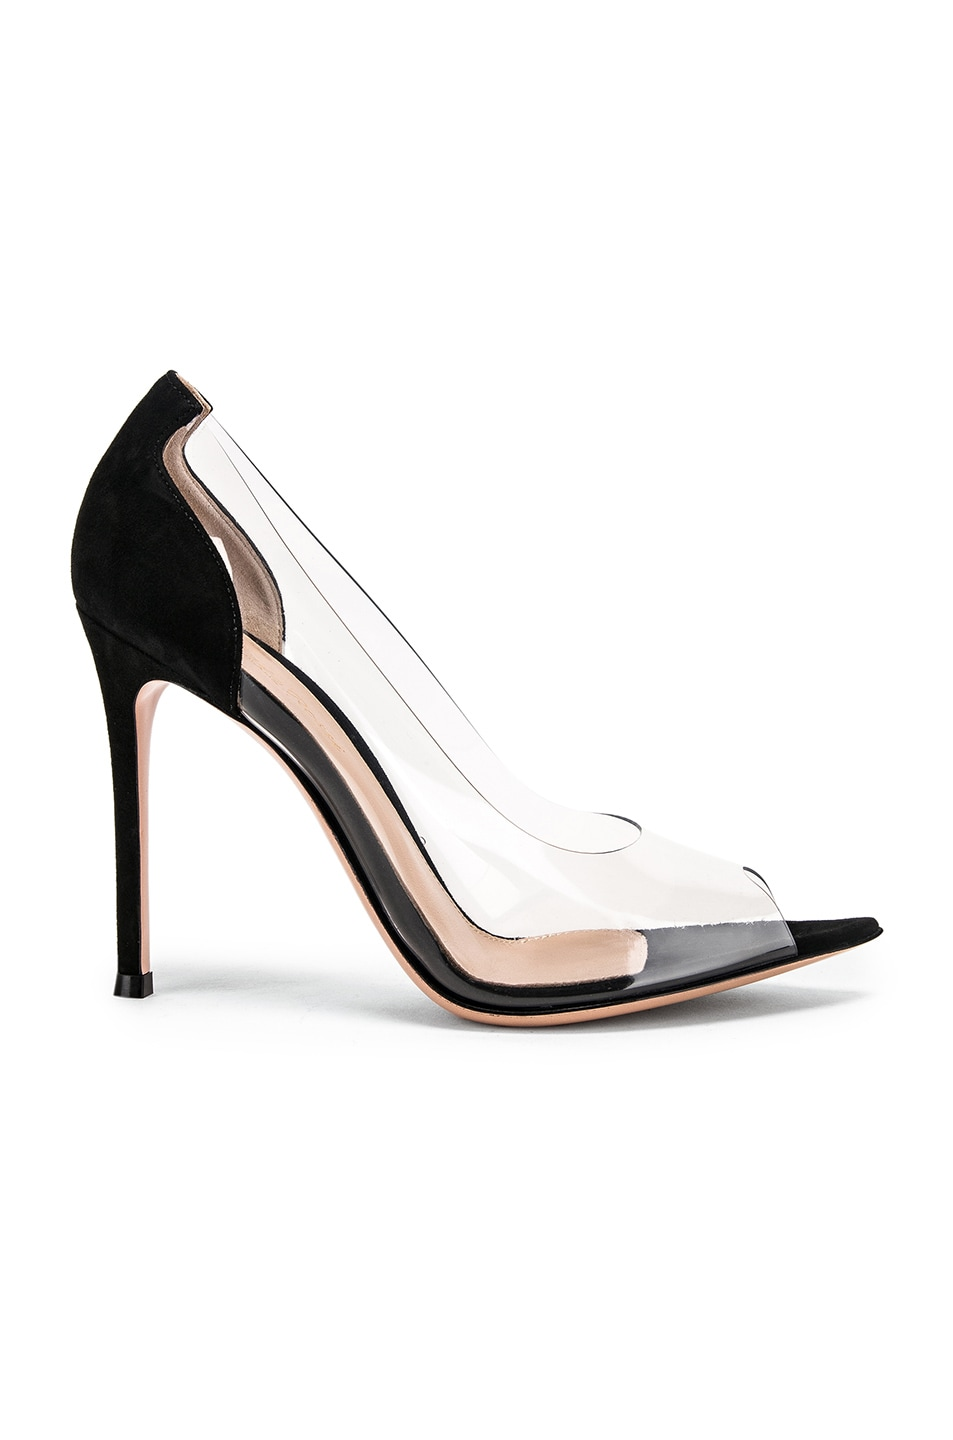 Image 1 of Gianvito Rossi Open Toe Heel in Black & Transparent